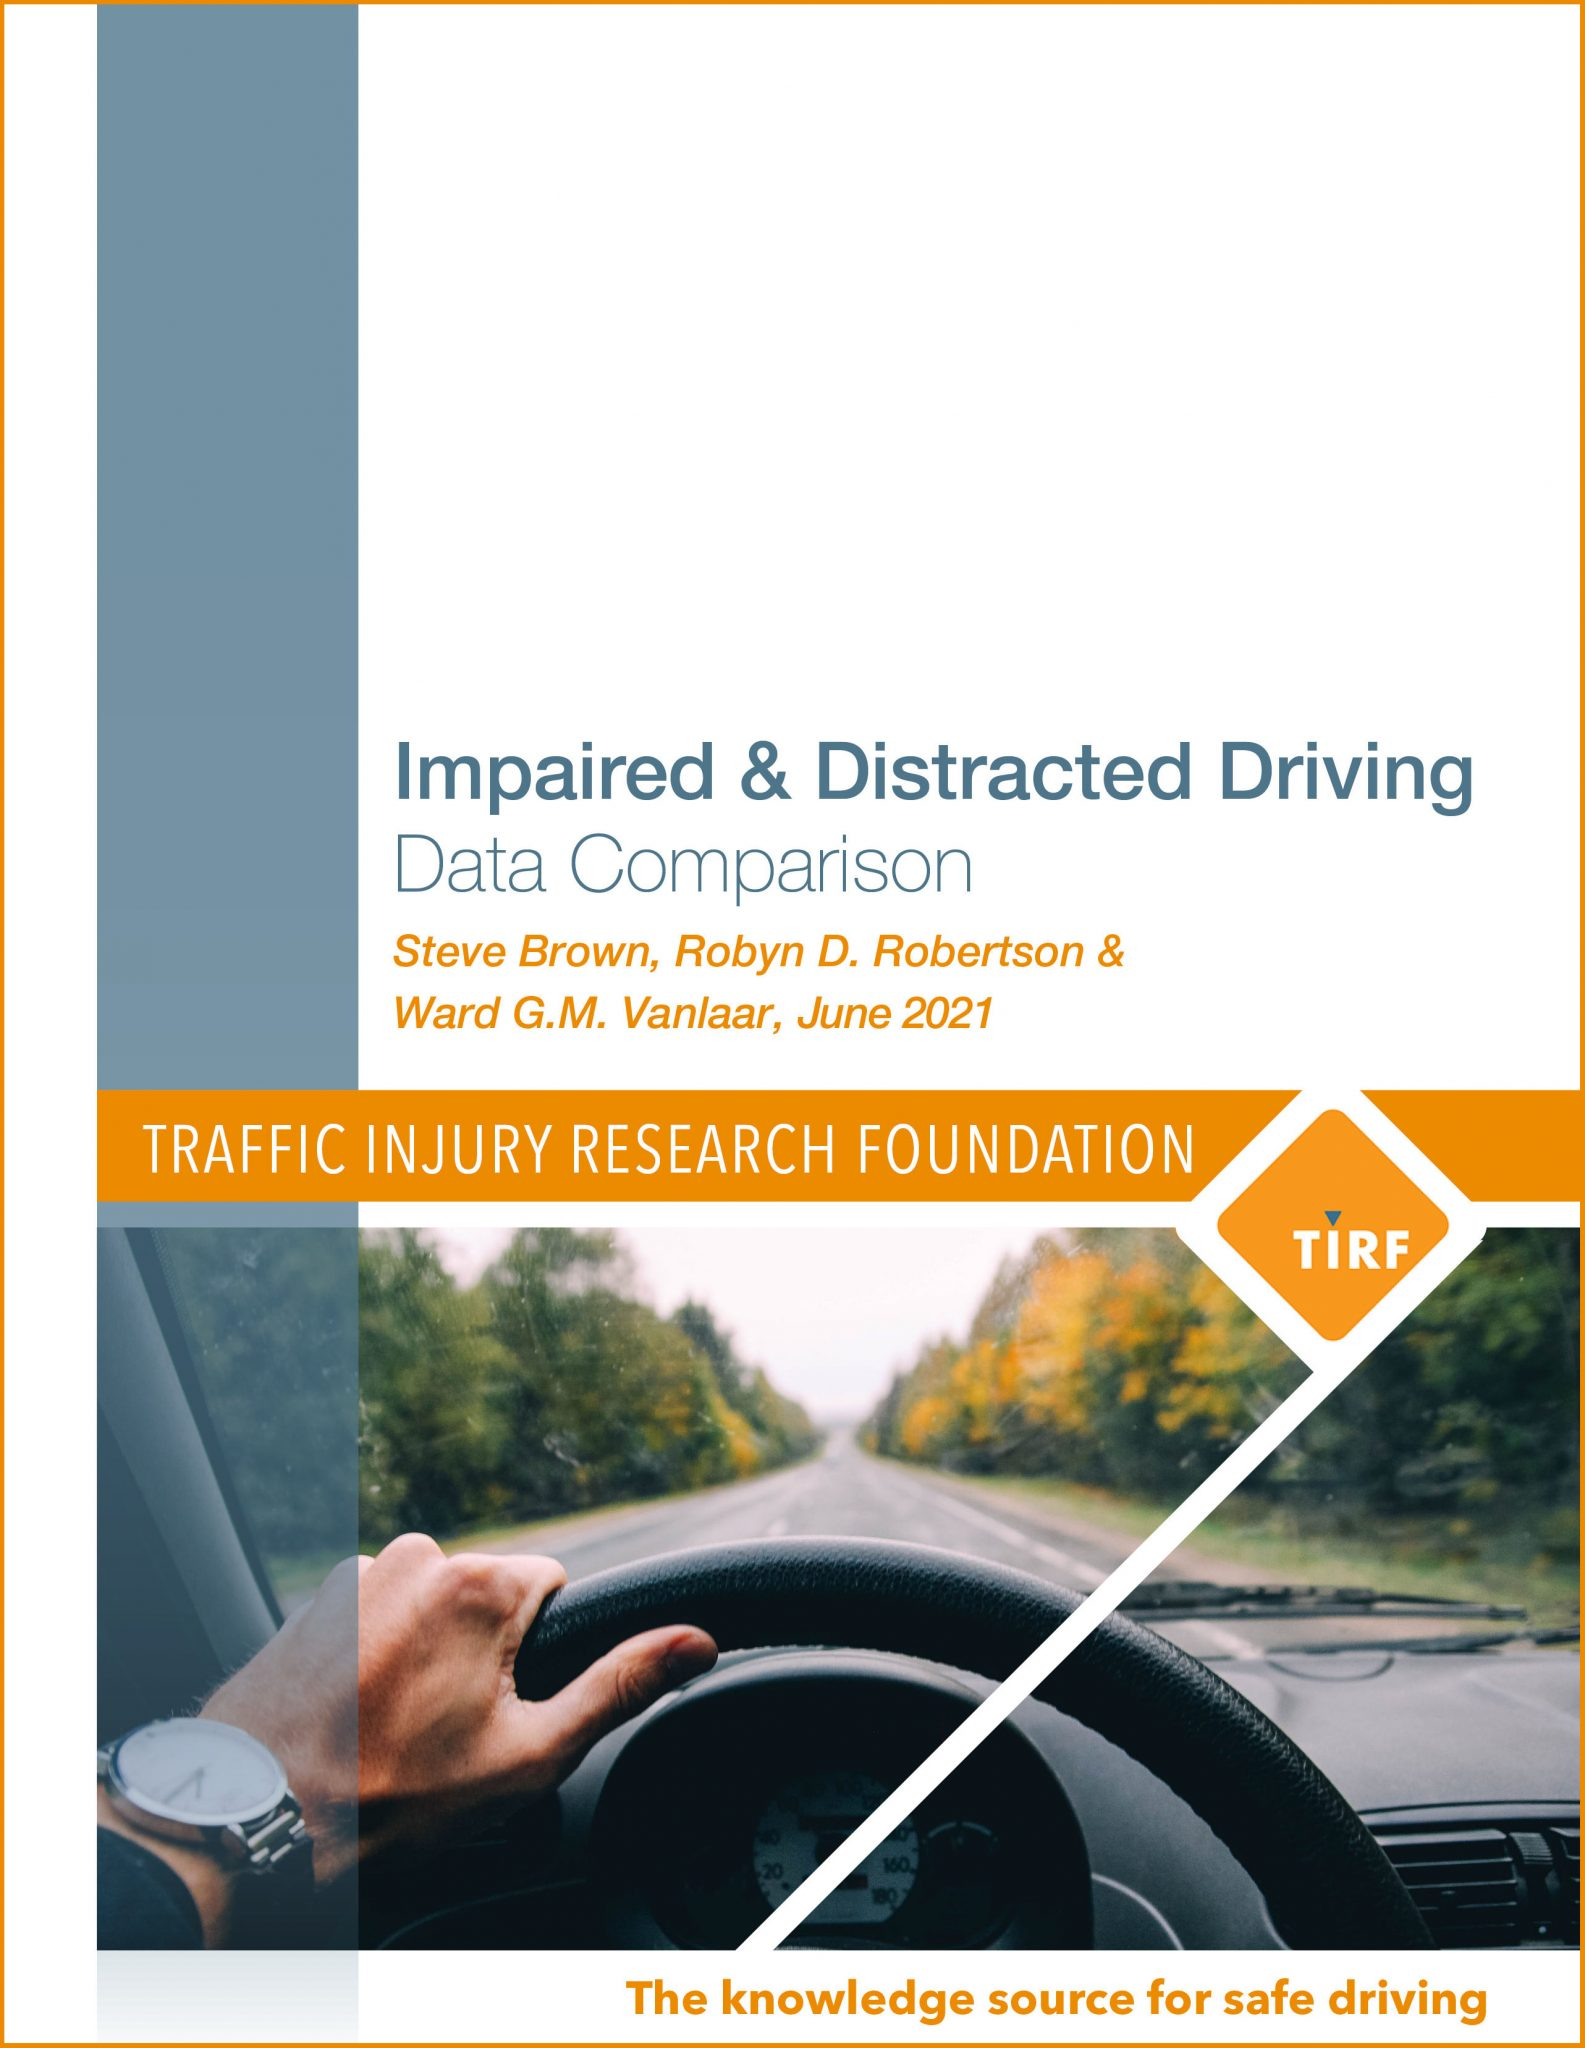 Impaired & Distracted Driving: Data Comparison